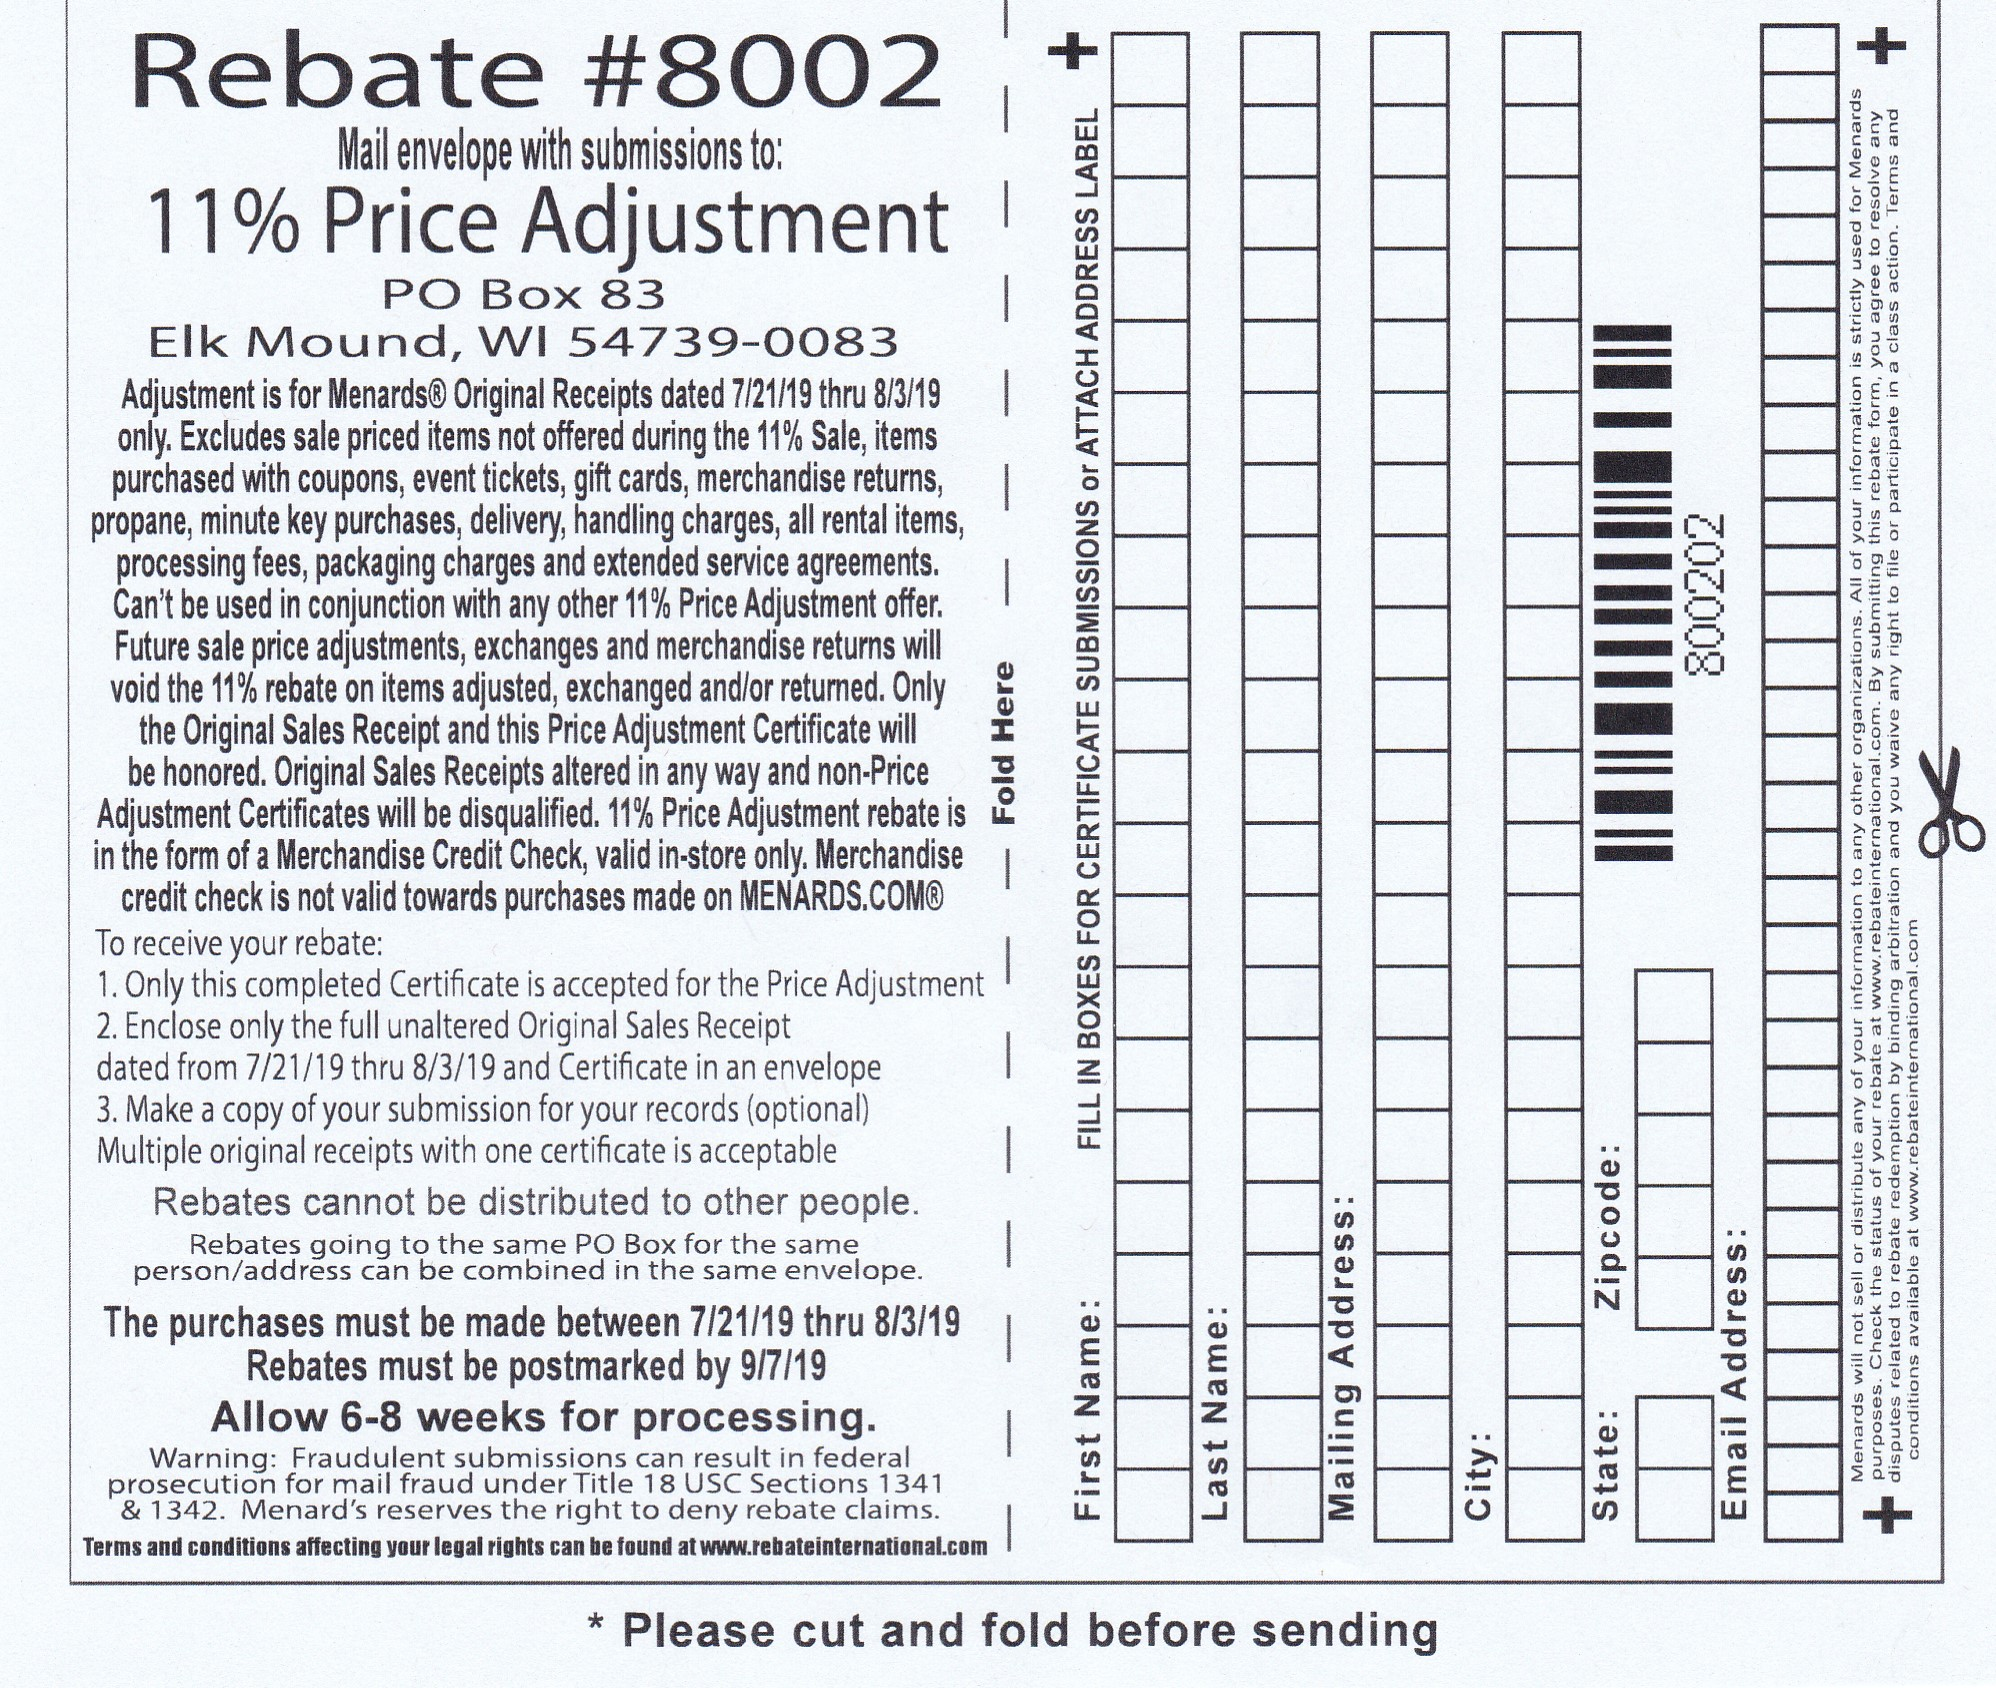 Menards 11% Price Adjustment Rebate #8002 – Purchases 7/21/19-8/3/19